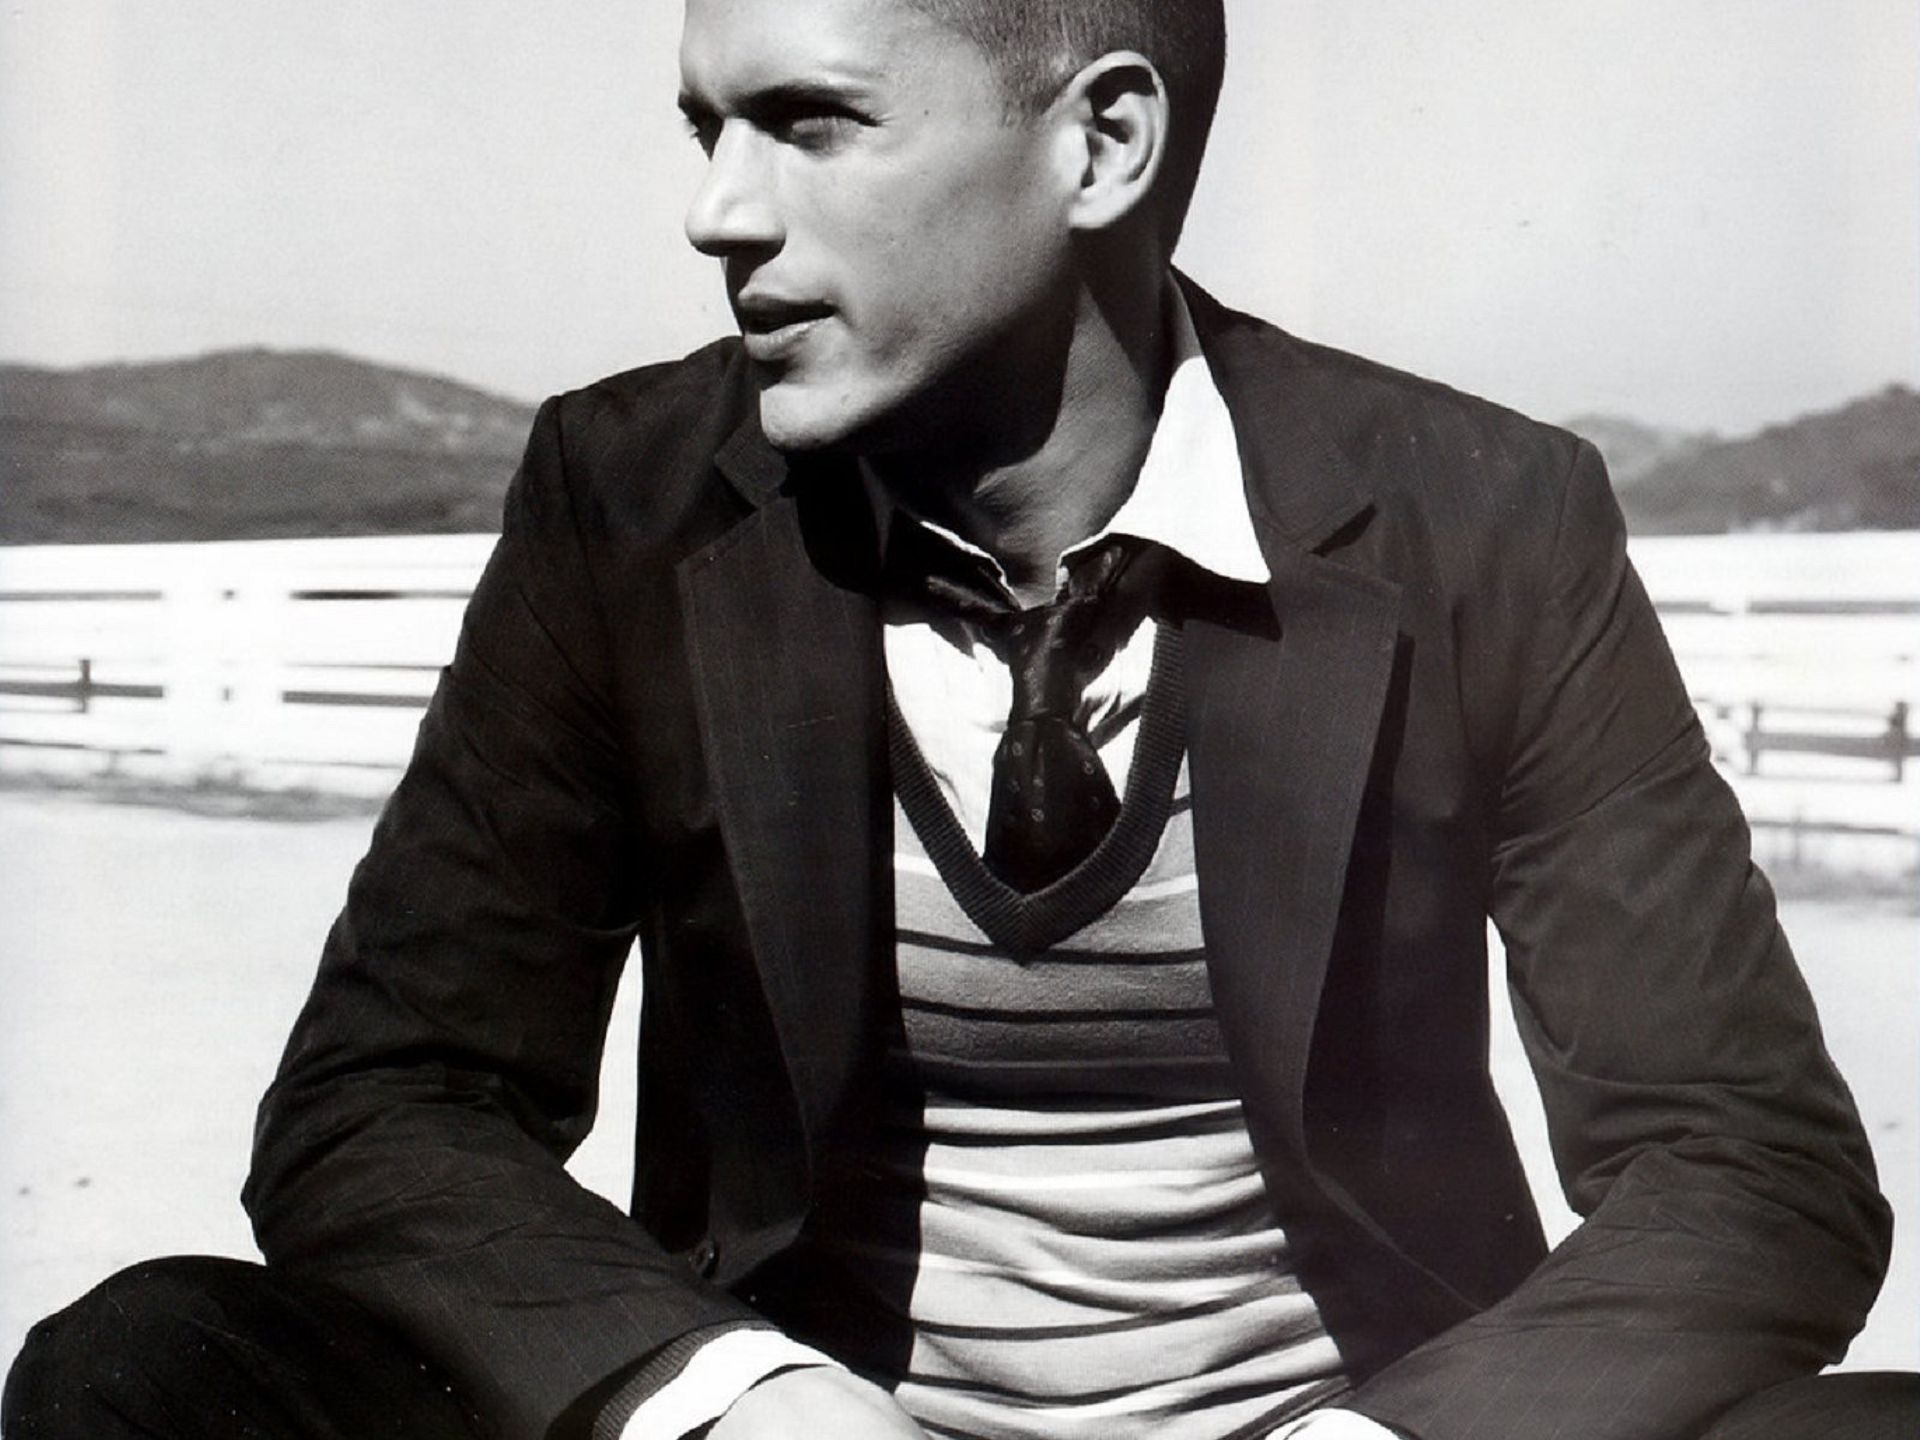 1920x1440 - Wentworth Miller Wallpapers 10